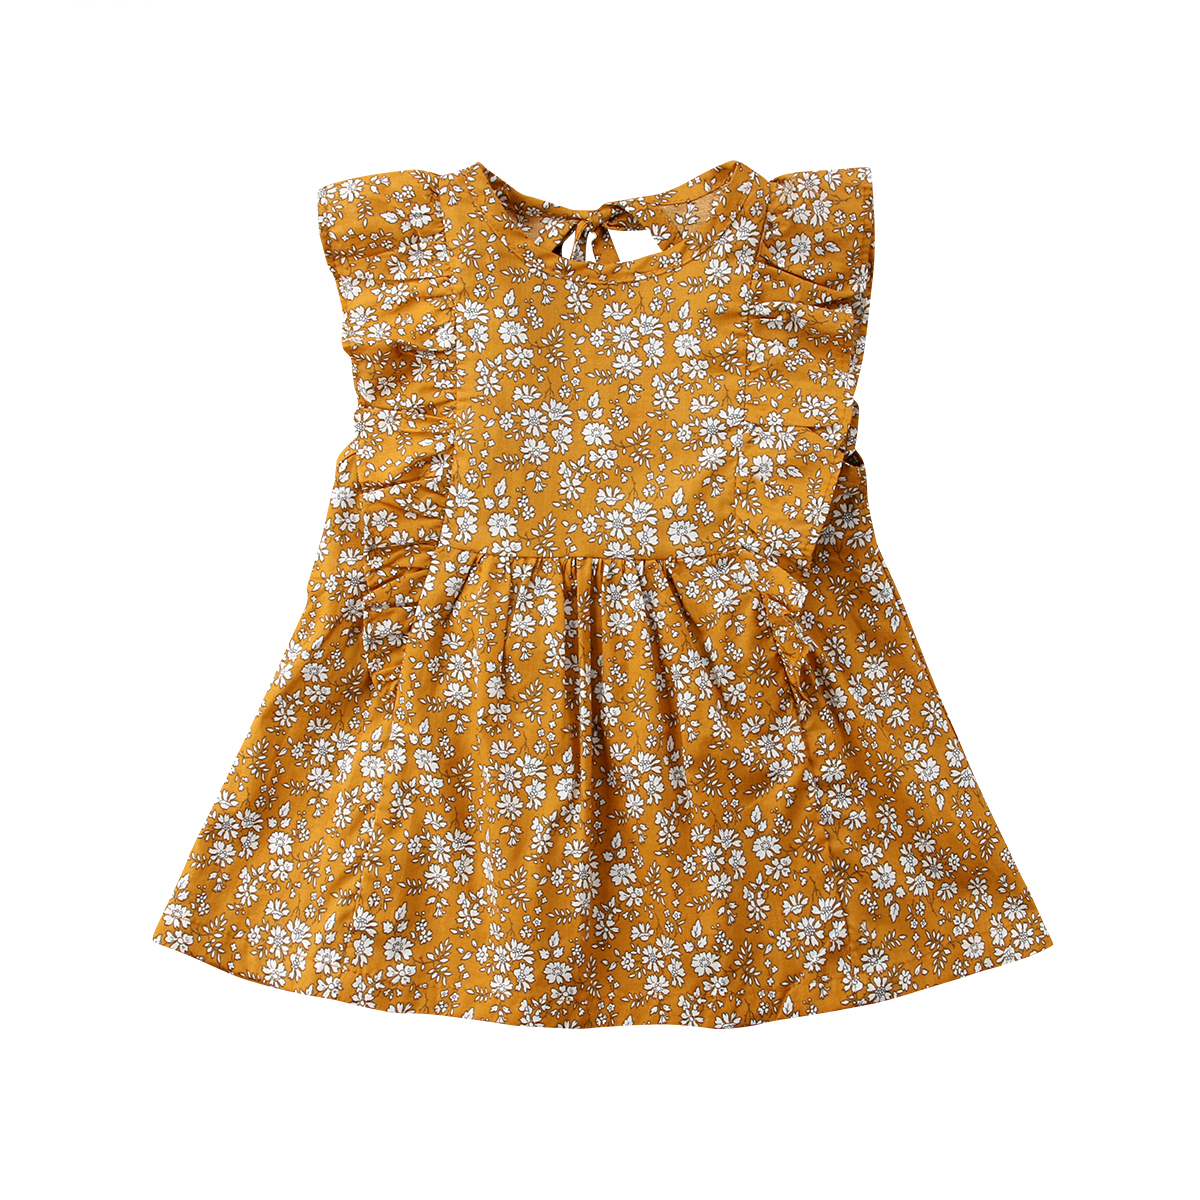 Cute Toddler Kids Baby Girls Batwing Sleeve Floral Dress Princess Dress Jumpsuit Outfits Clothes Summer Set ac 50 250v 2000w motor speed controller adjustable electronic voltage regulator thermostat dimming dimmers regulator module